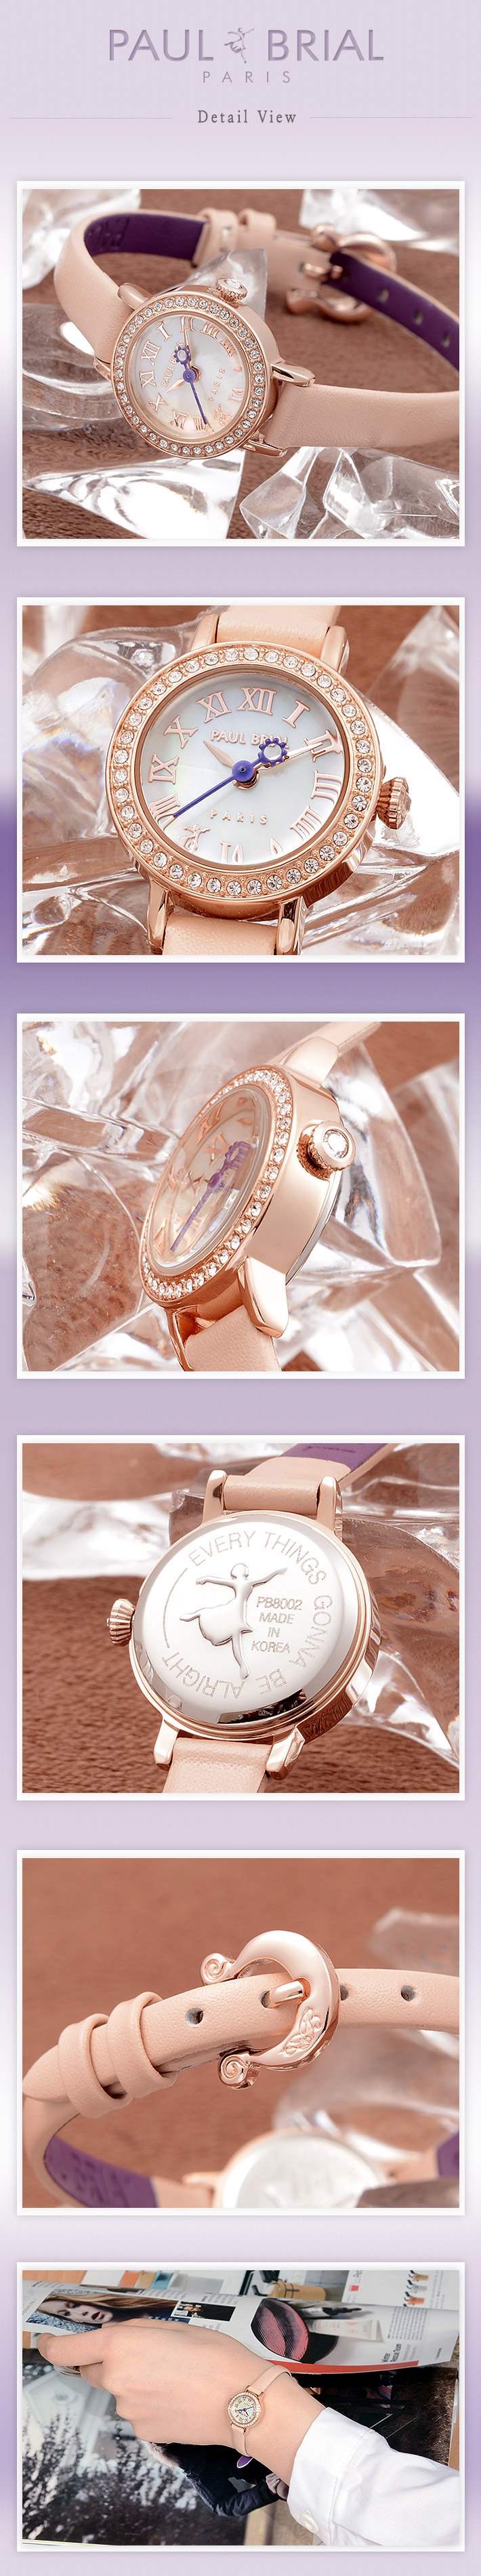 [ PAUL BRIAL ] KOREA MADE HIGH QUALITY LADIES ROSE GOLD PINK LEATHER BAND WATCH PB8002RGPK_R MARSEILLE